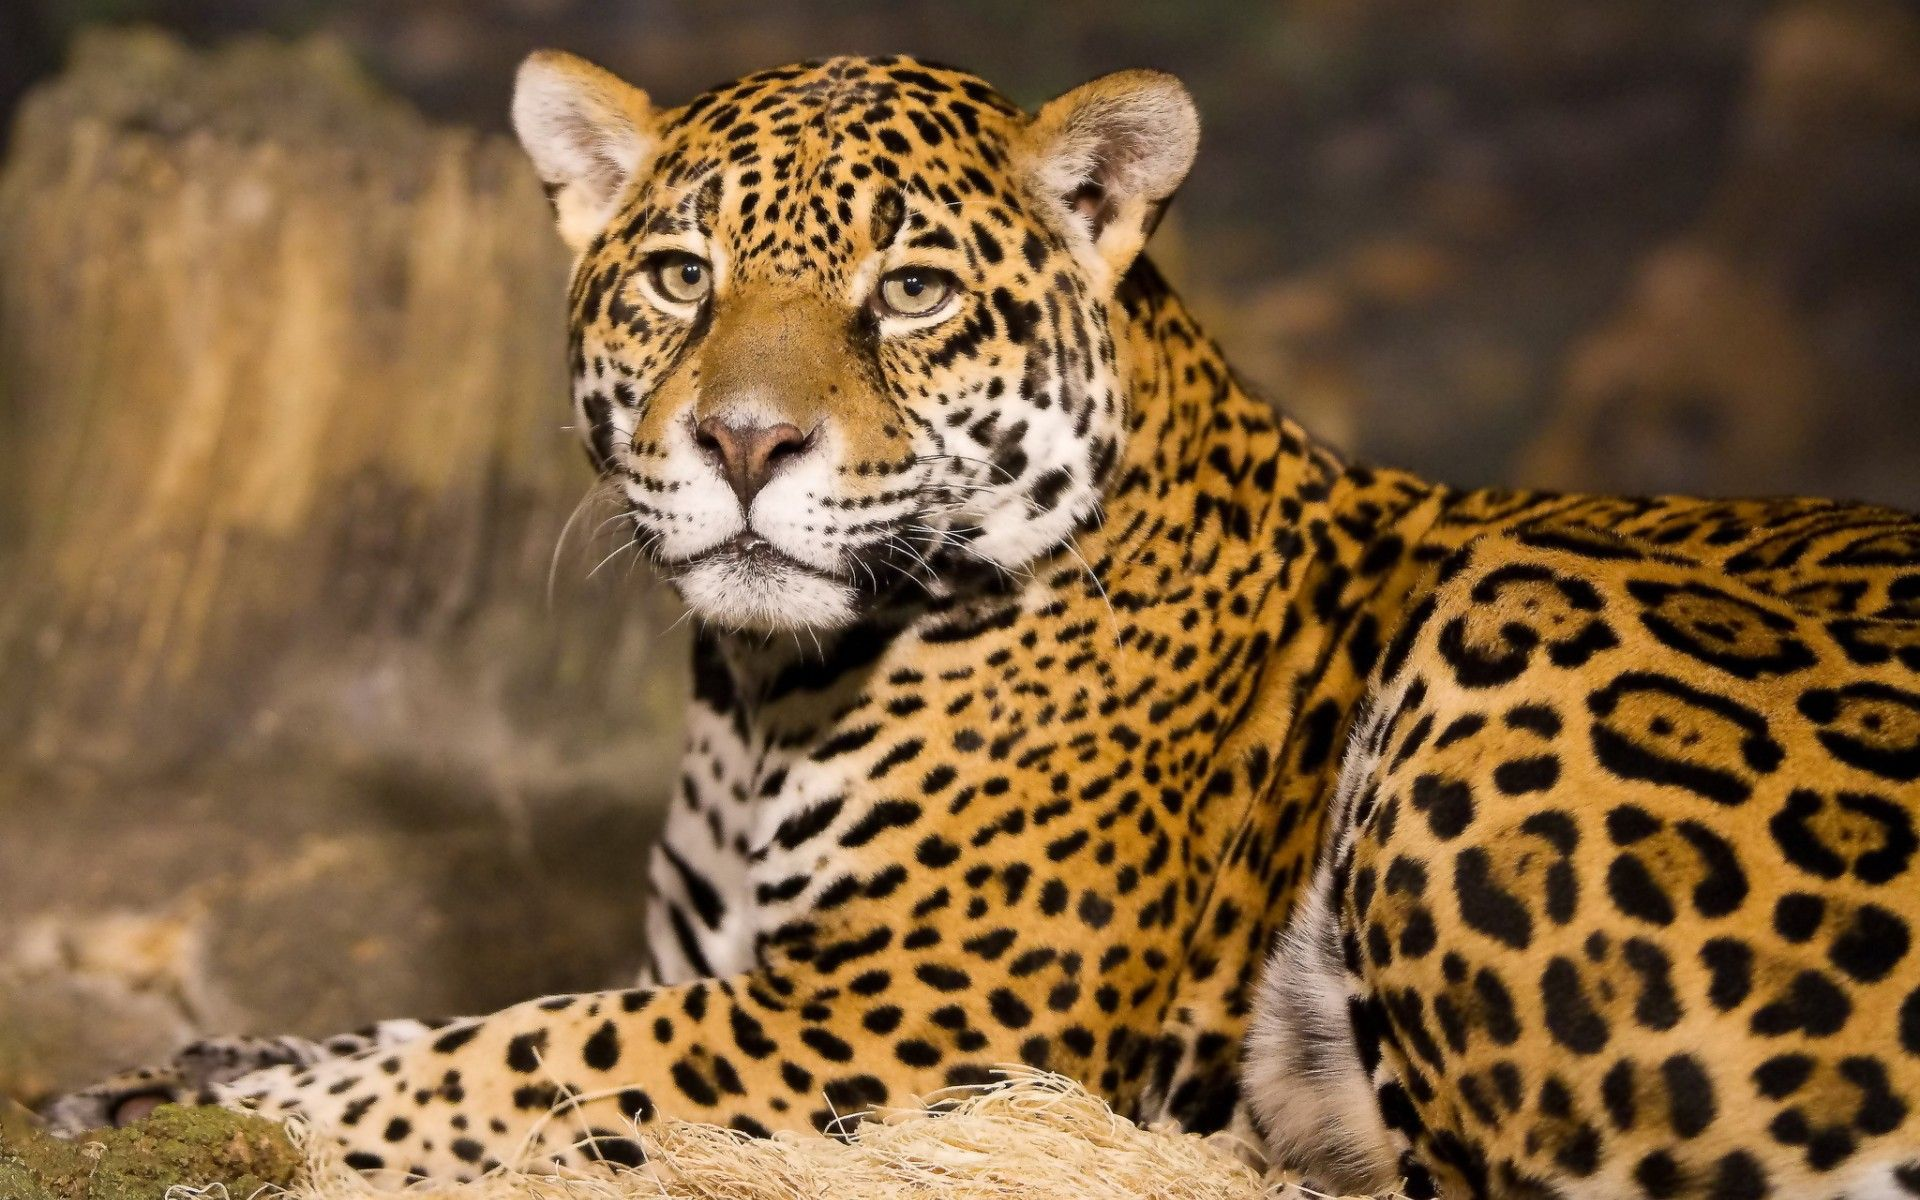 What differentiates a leopard from a cheetah or a jaguar